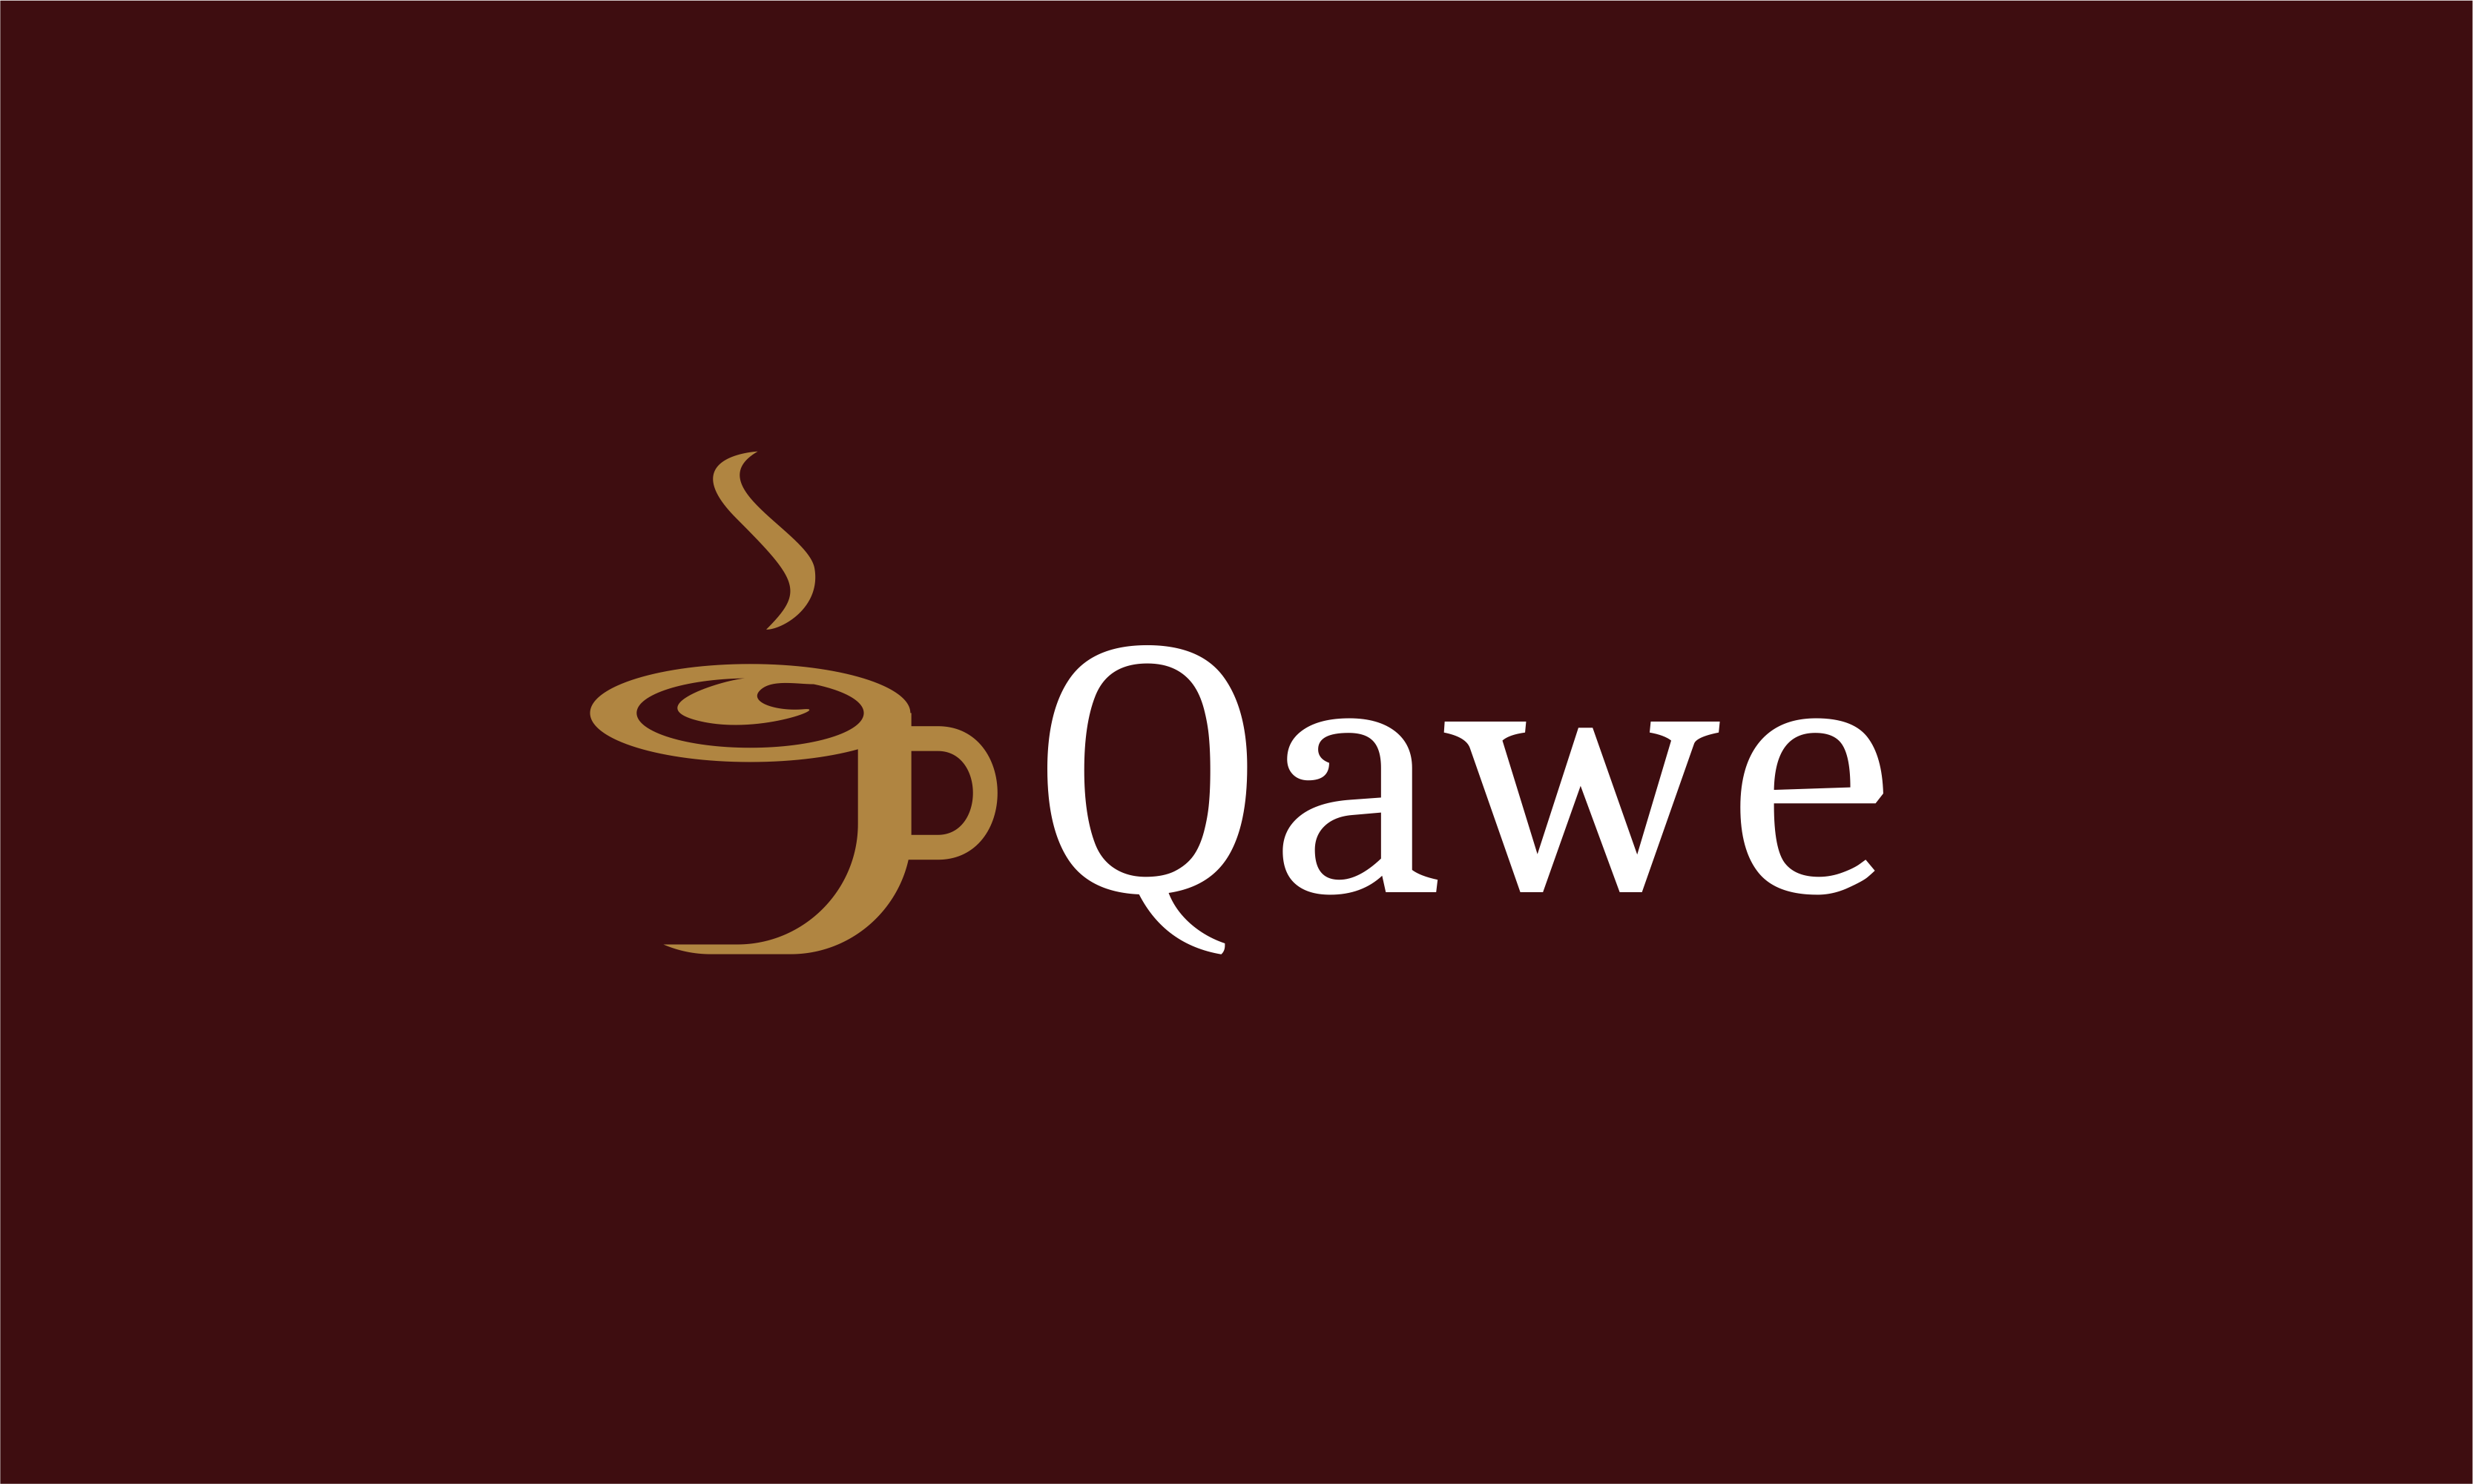 Qawe - E-commerce brand name for sale